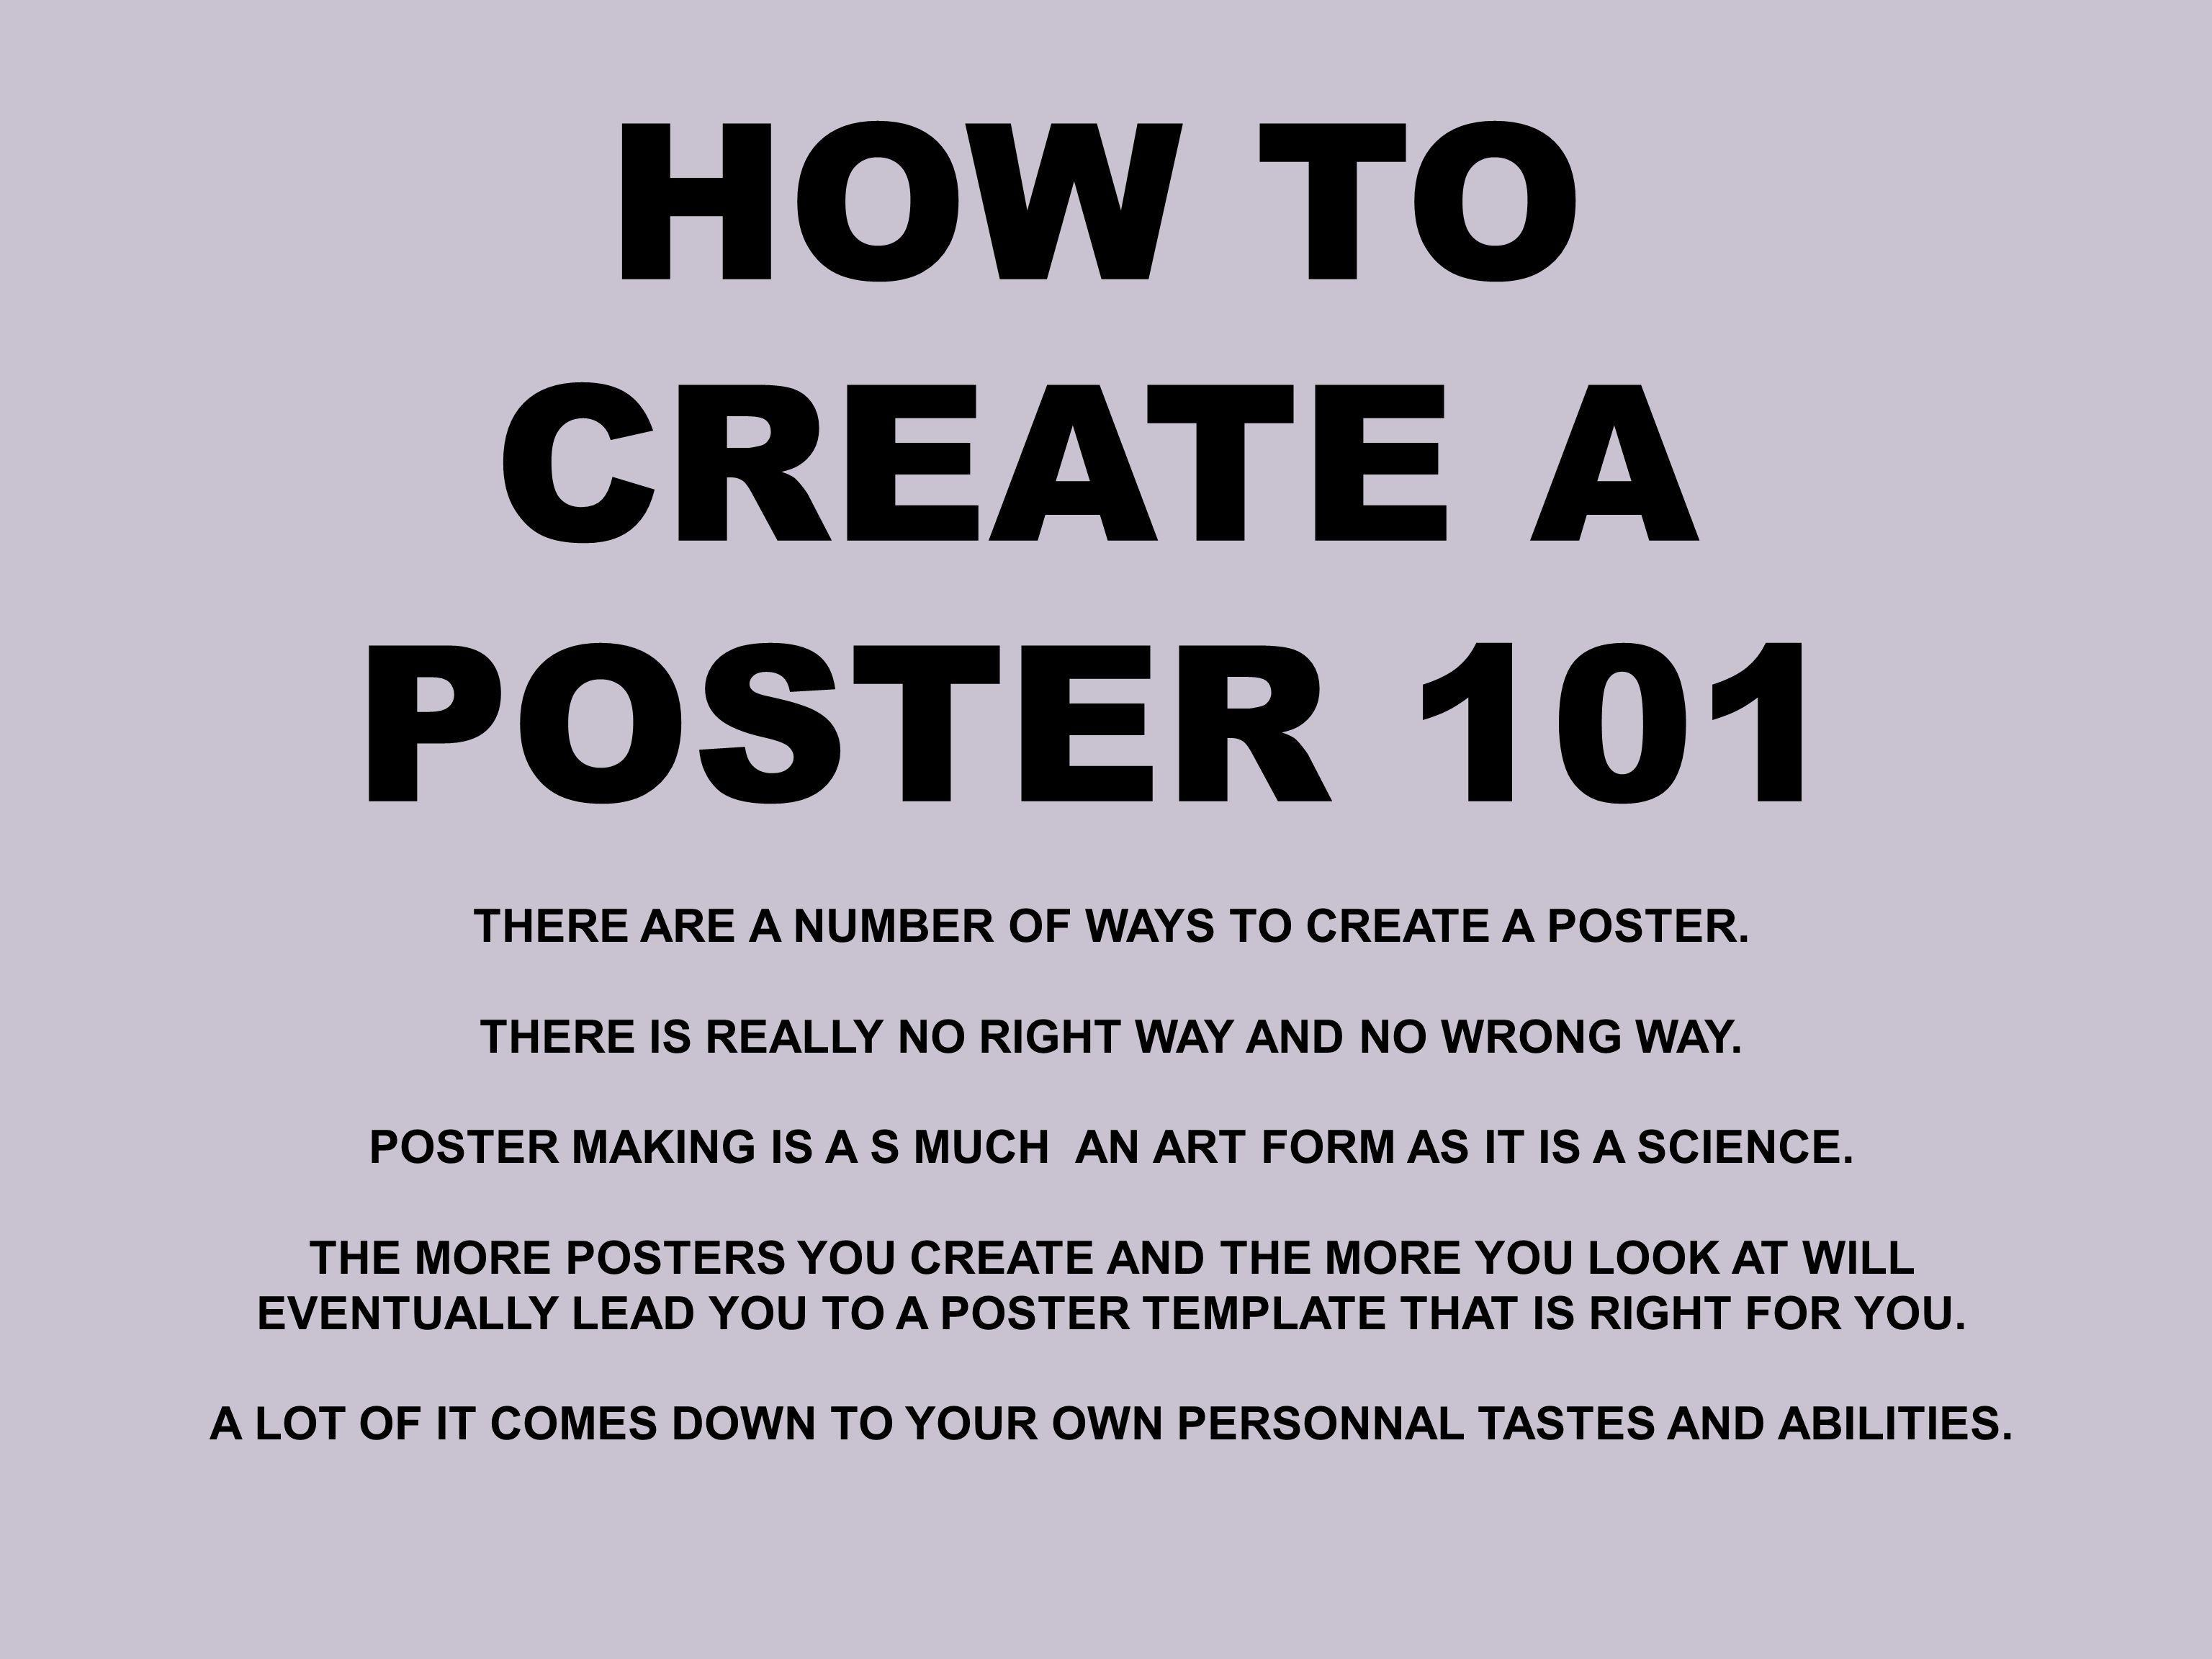 HOW TO CREATE A POSTER 101 THERE ARE A NUMBER OF WAYS TO CREATE A POSTER. THERE IS REALLY NO RIGHT WAY AND NO WRONG WAY. POSTER MAKING IS A S MUCH AN